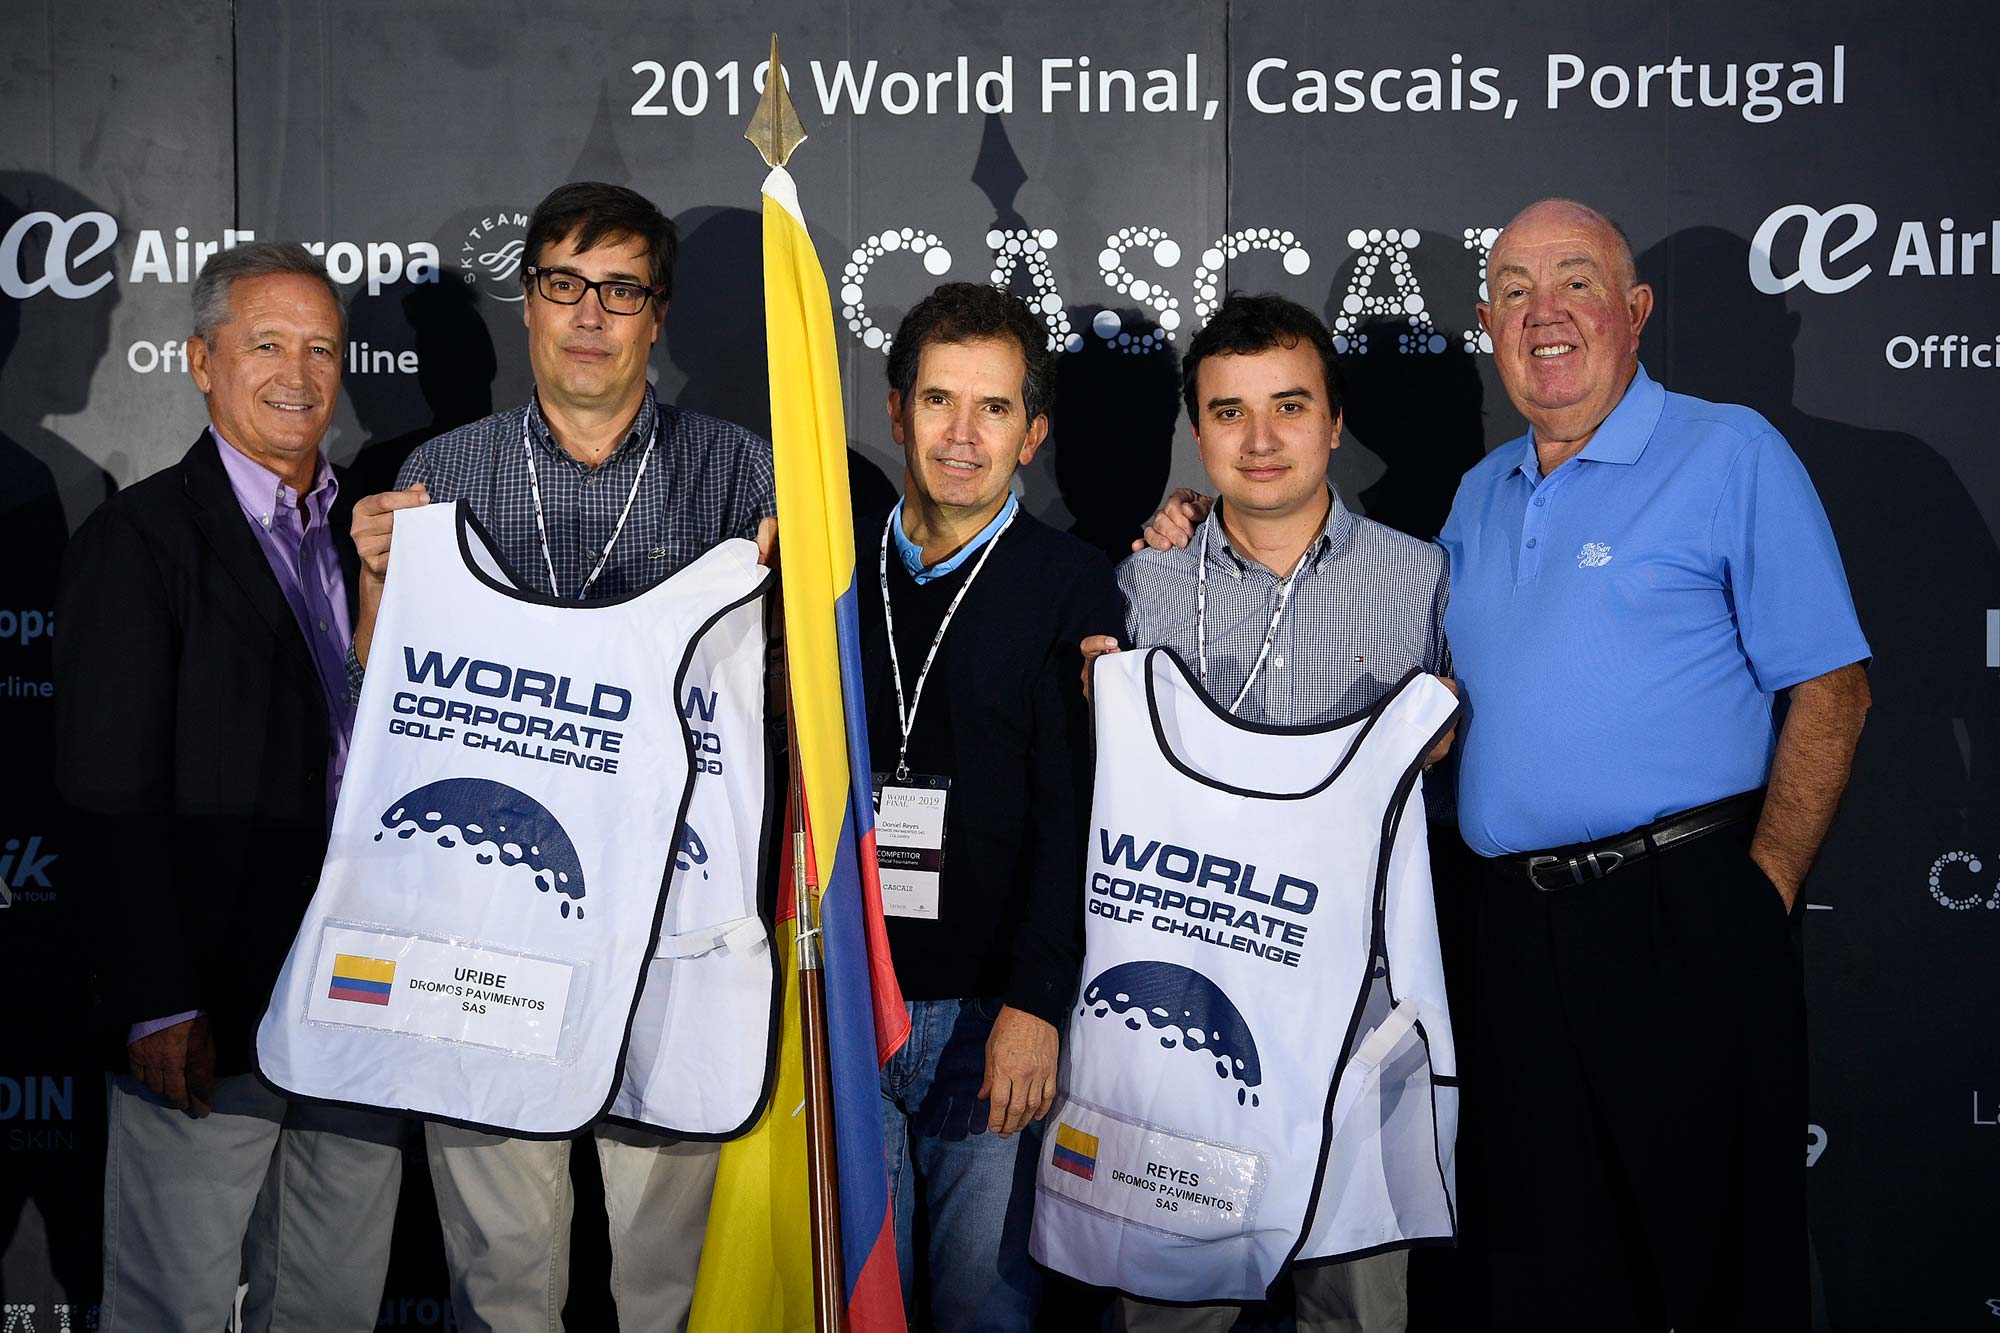 World Corporate Golf Challenge WCGC Colombia